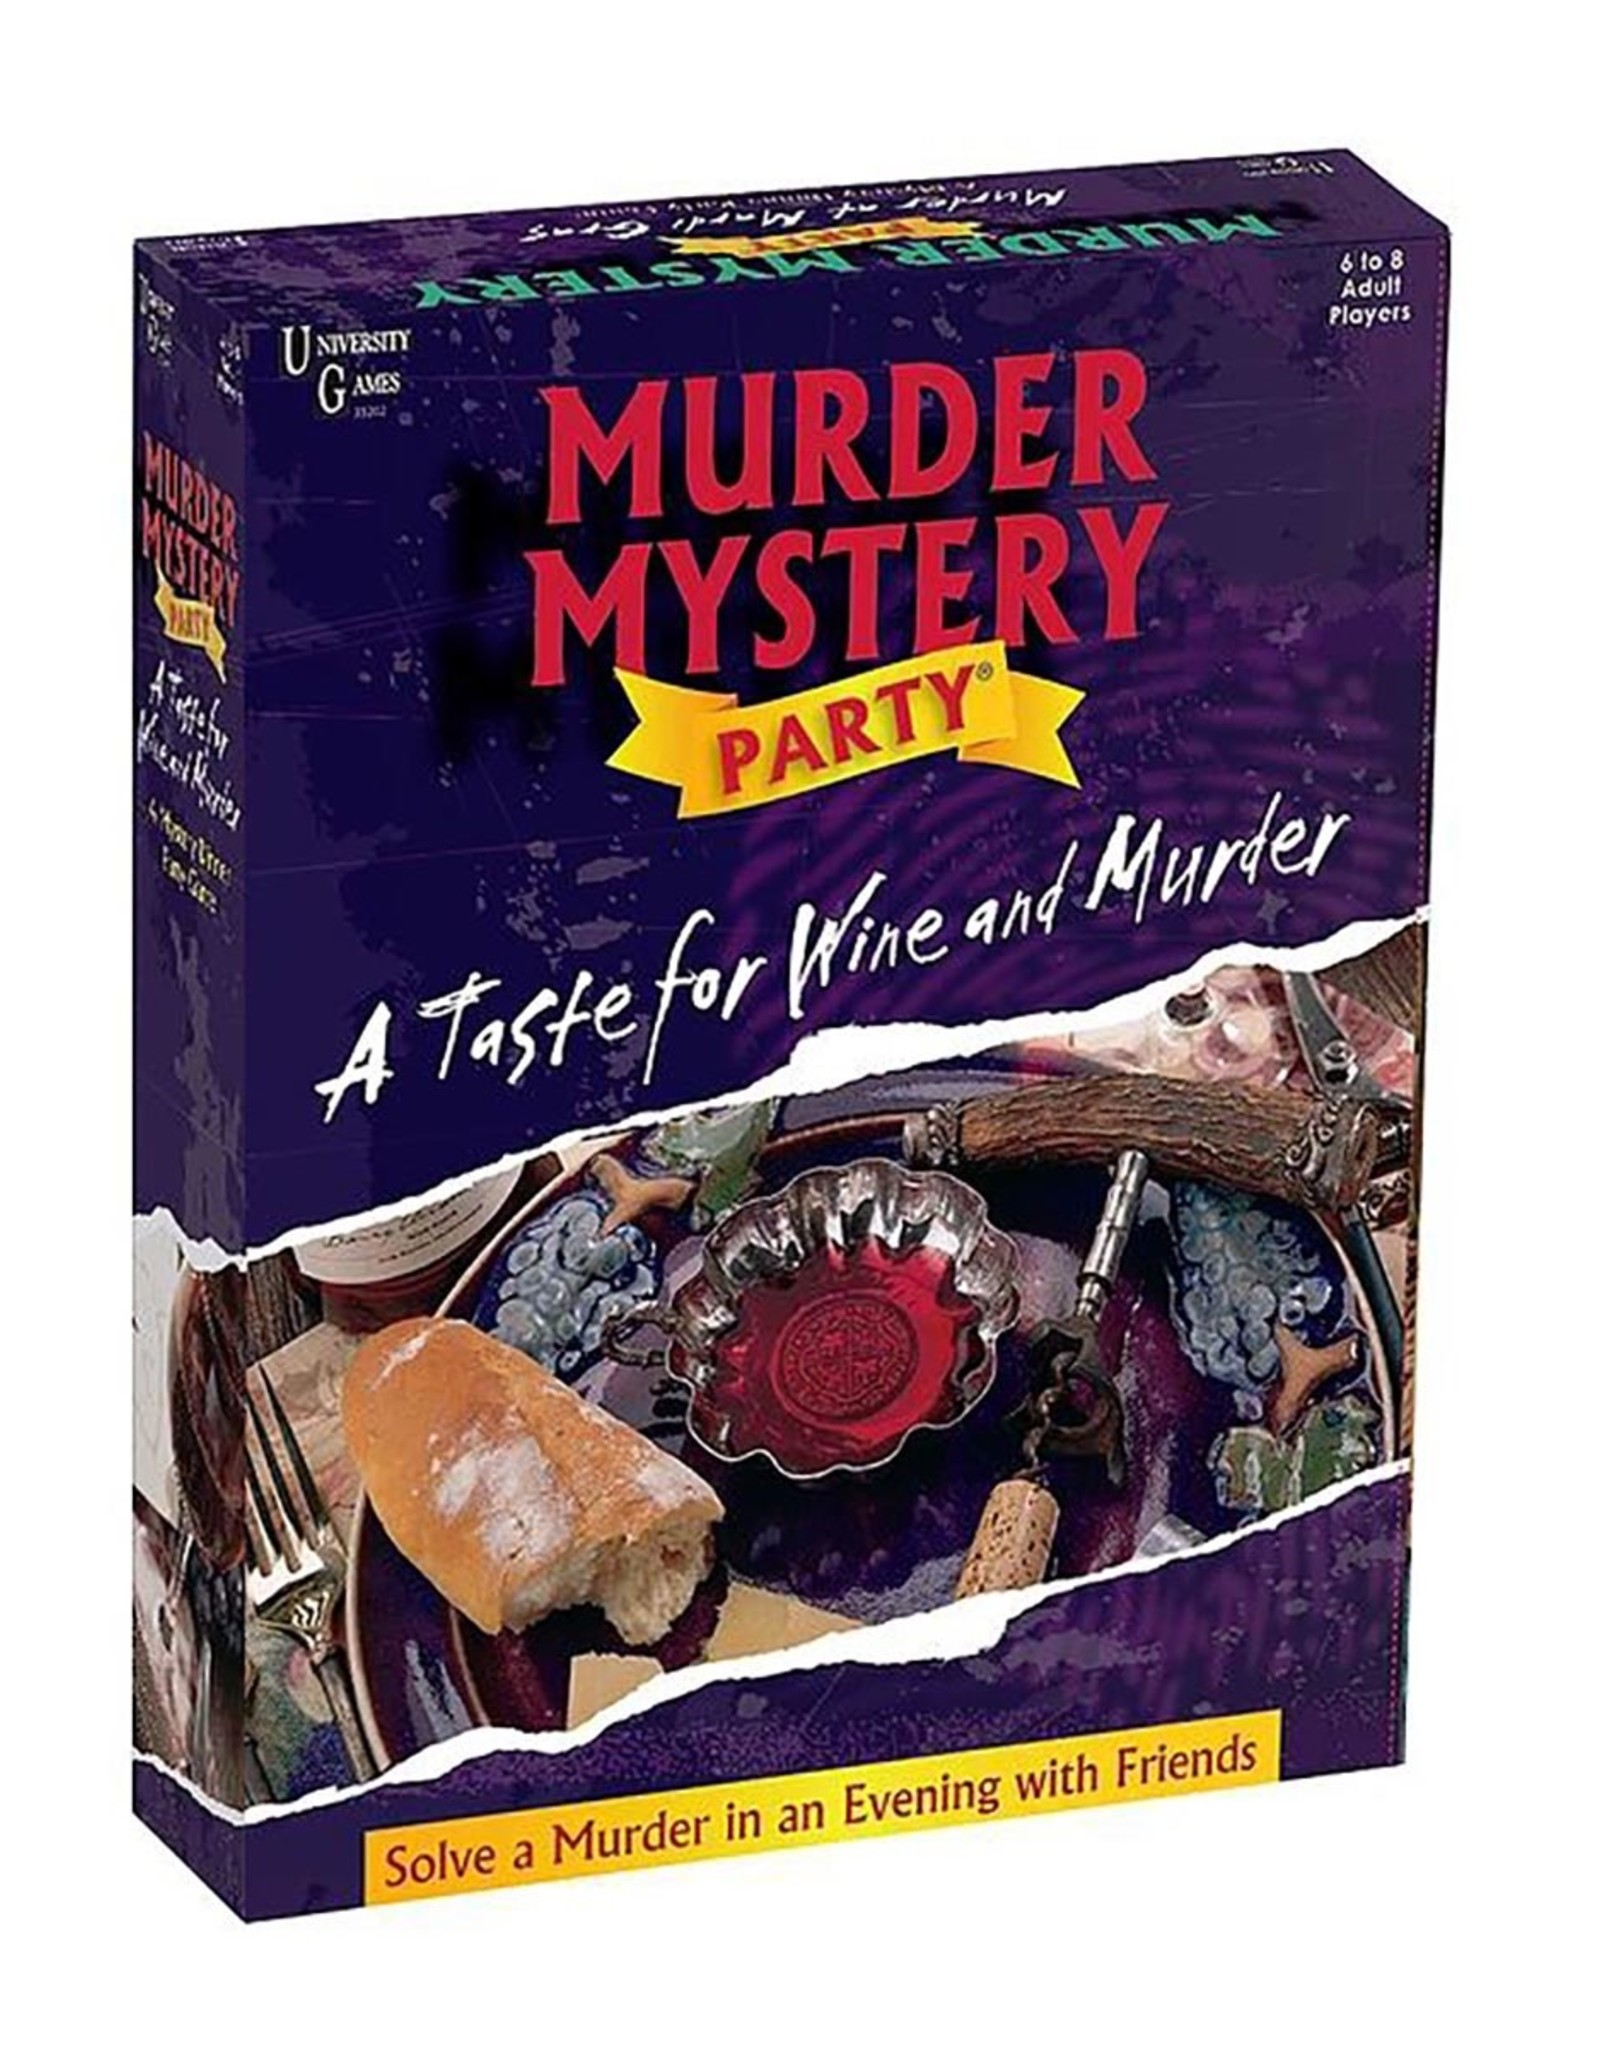 University Games A Taste for Wine and Murder